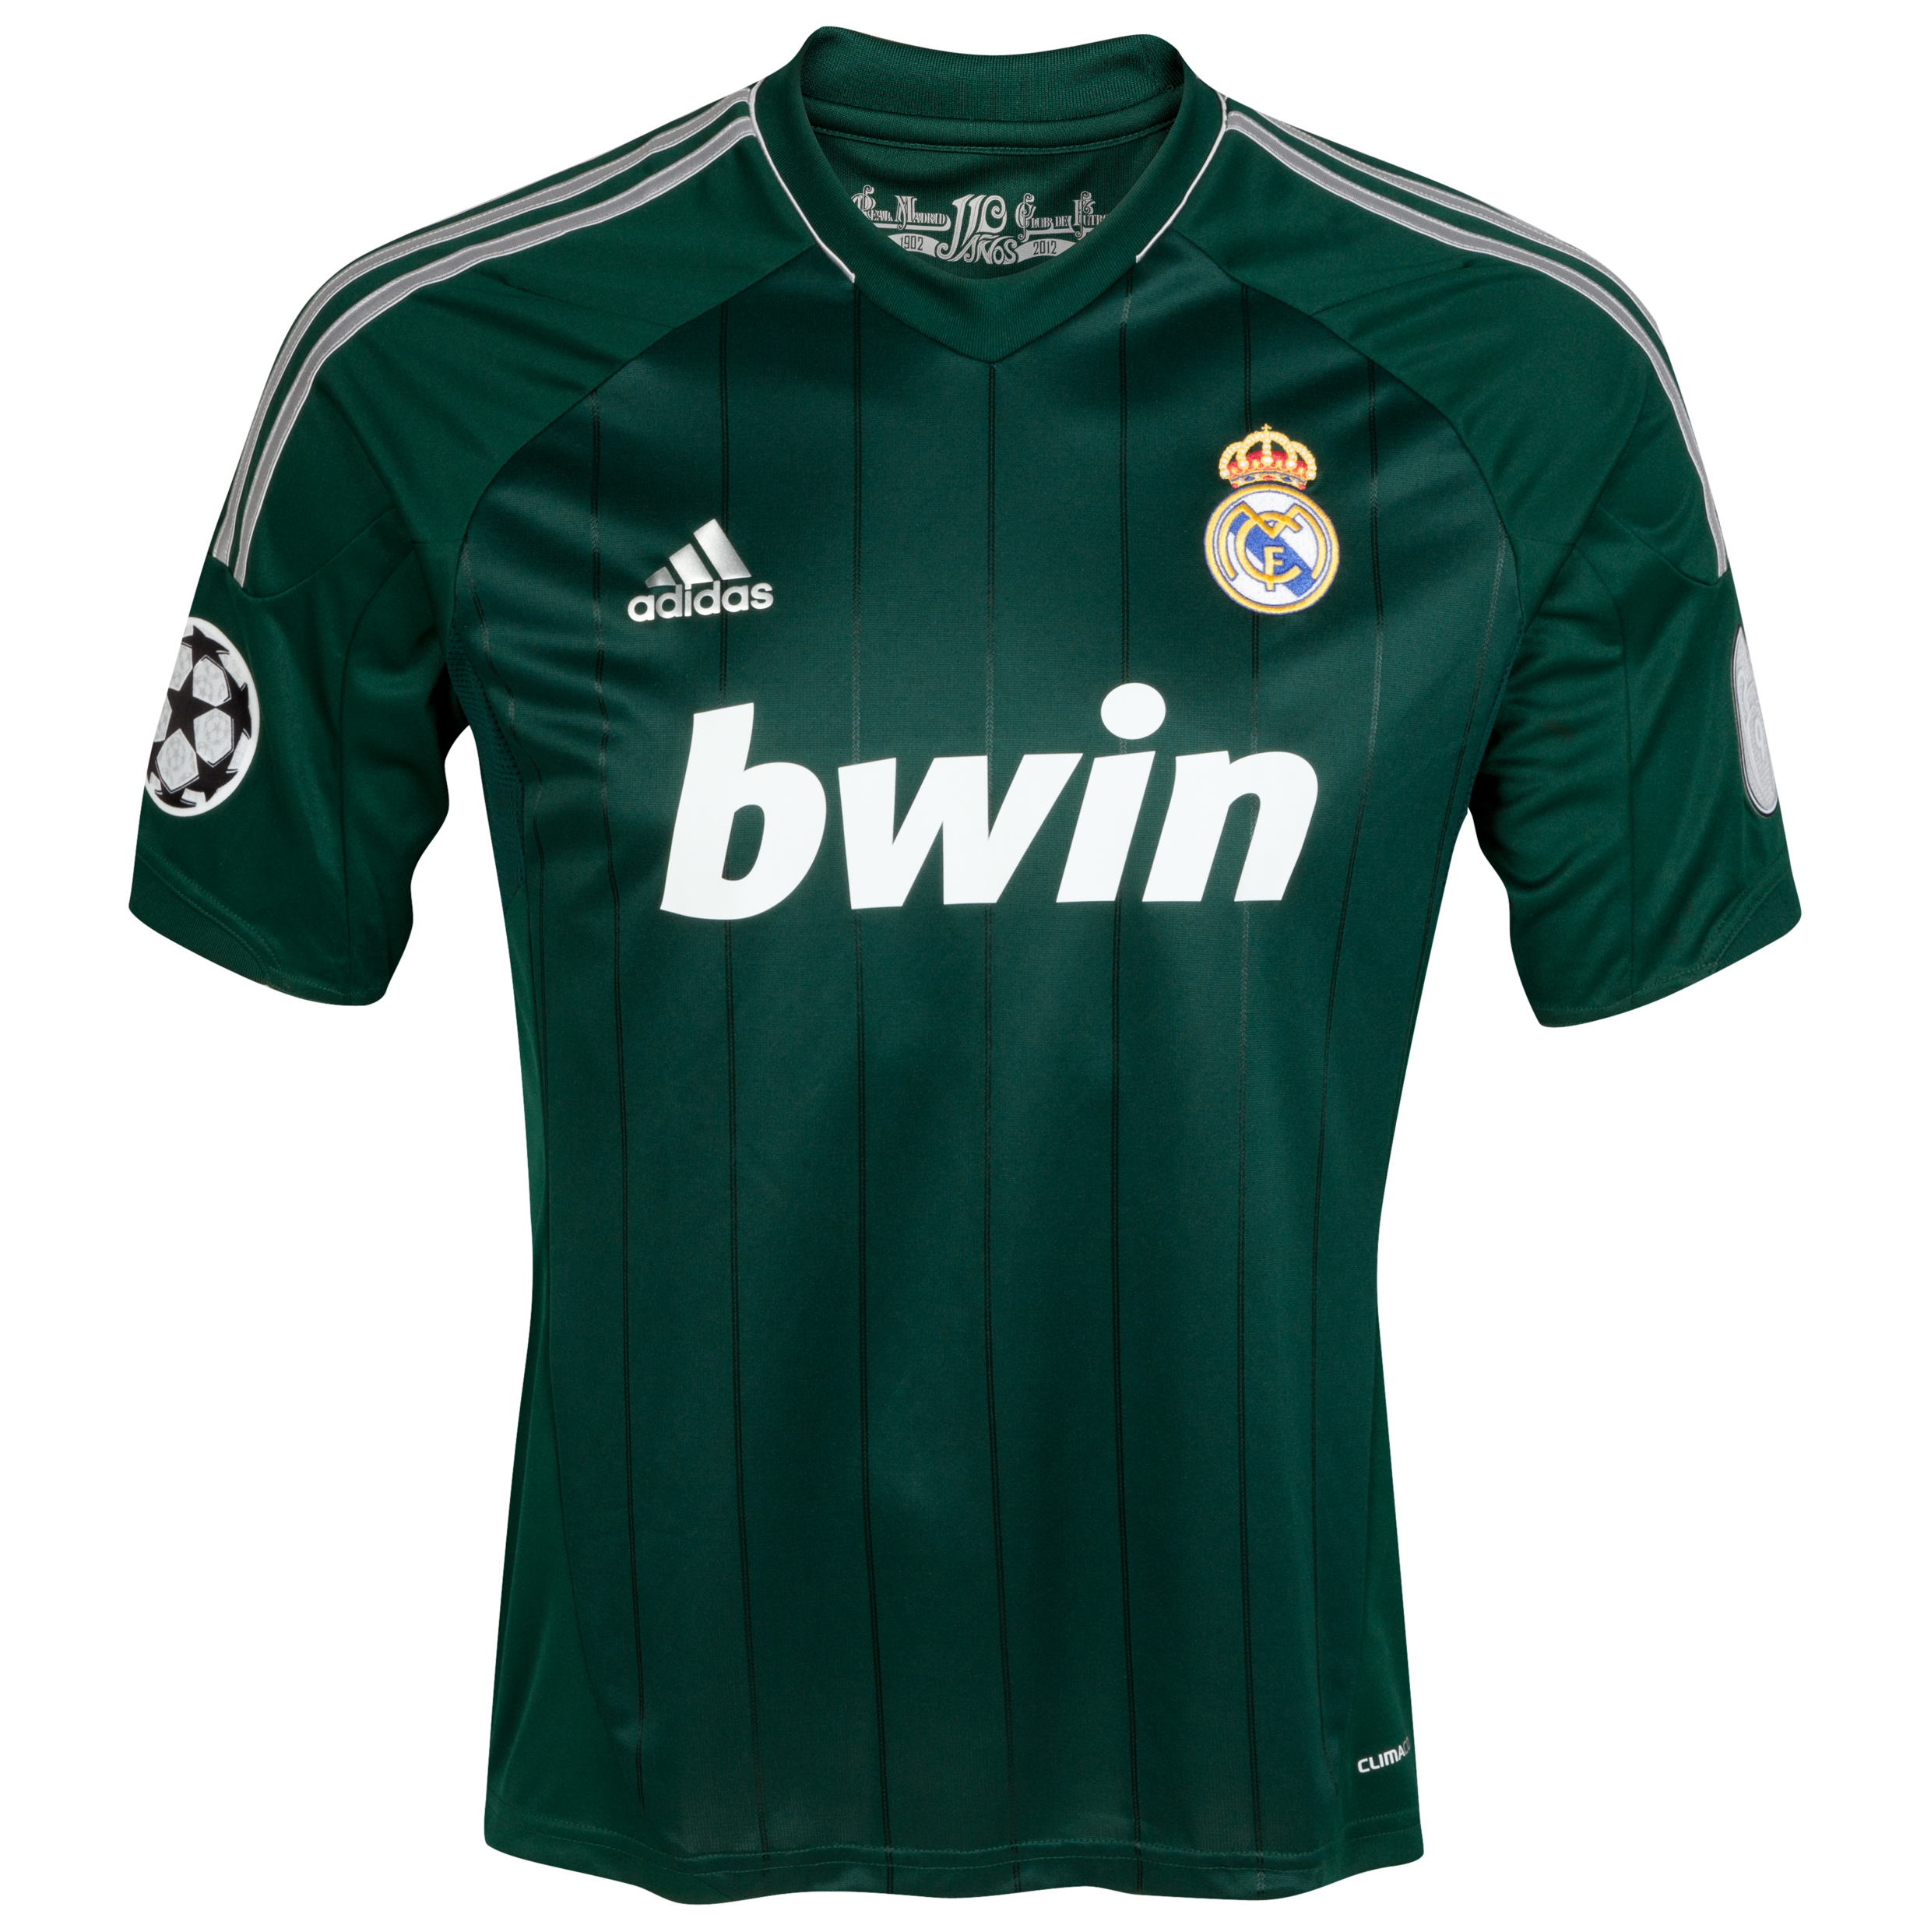 Real Madrid UEFA Champions League Third Shirt 2012/13 - Kids